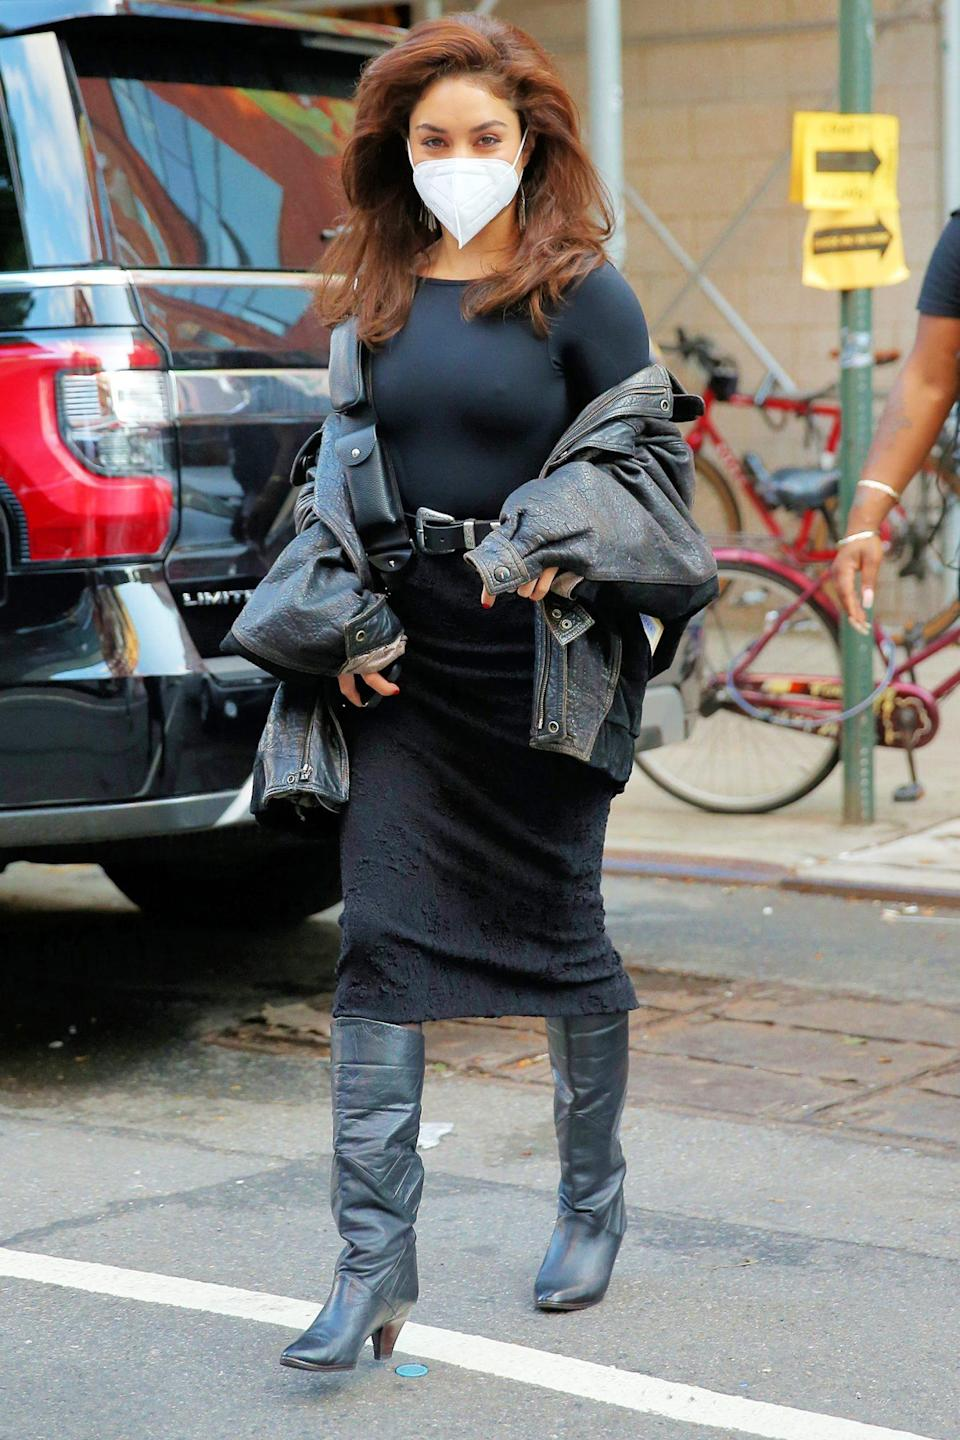 <p>Vanessa Hudgens is seen in an all-black ensemble as she makes her way to the set of Lin-Manuel Miranda's directorial debut <i>Tick, Tick...BOOM! </i>on Tuesday in N.Y.C. </p>